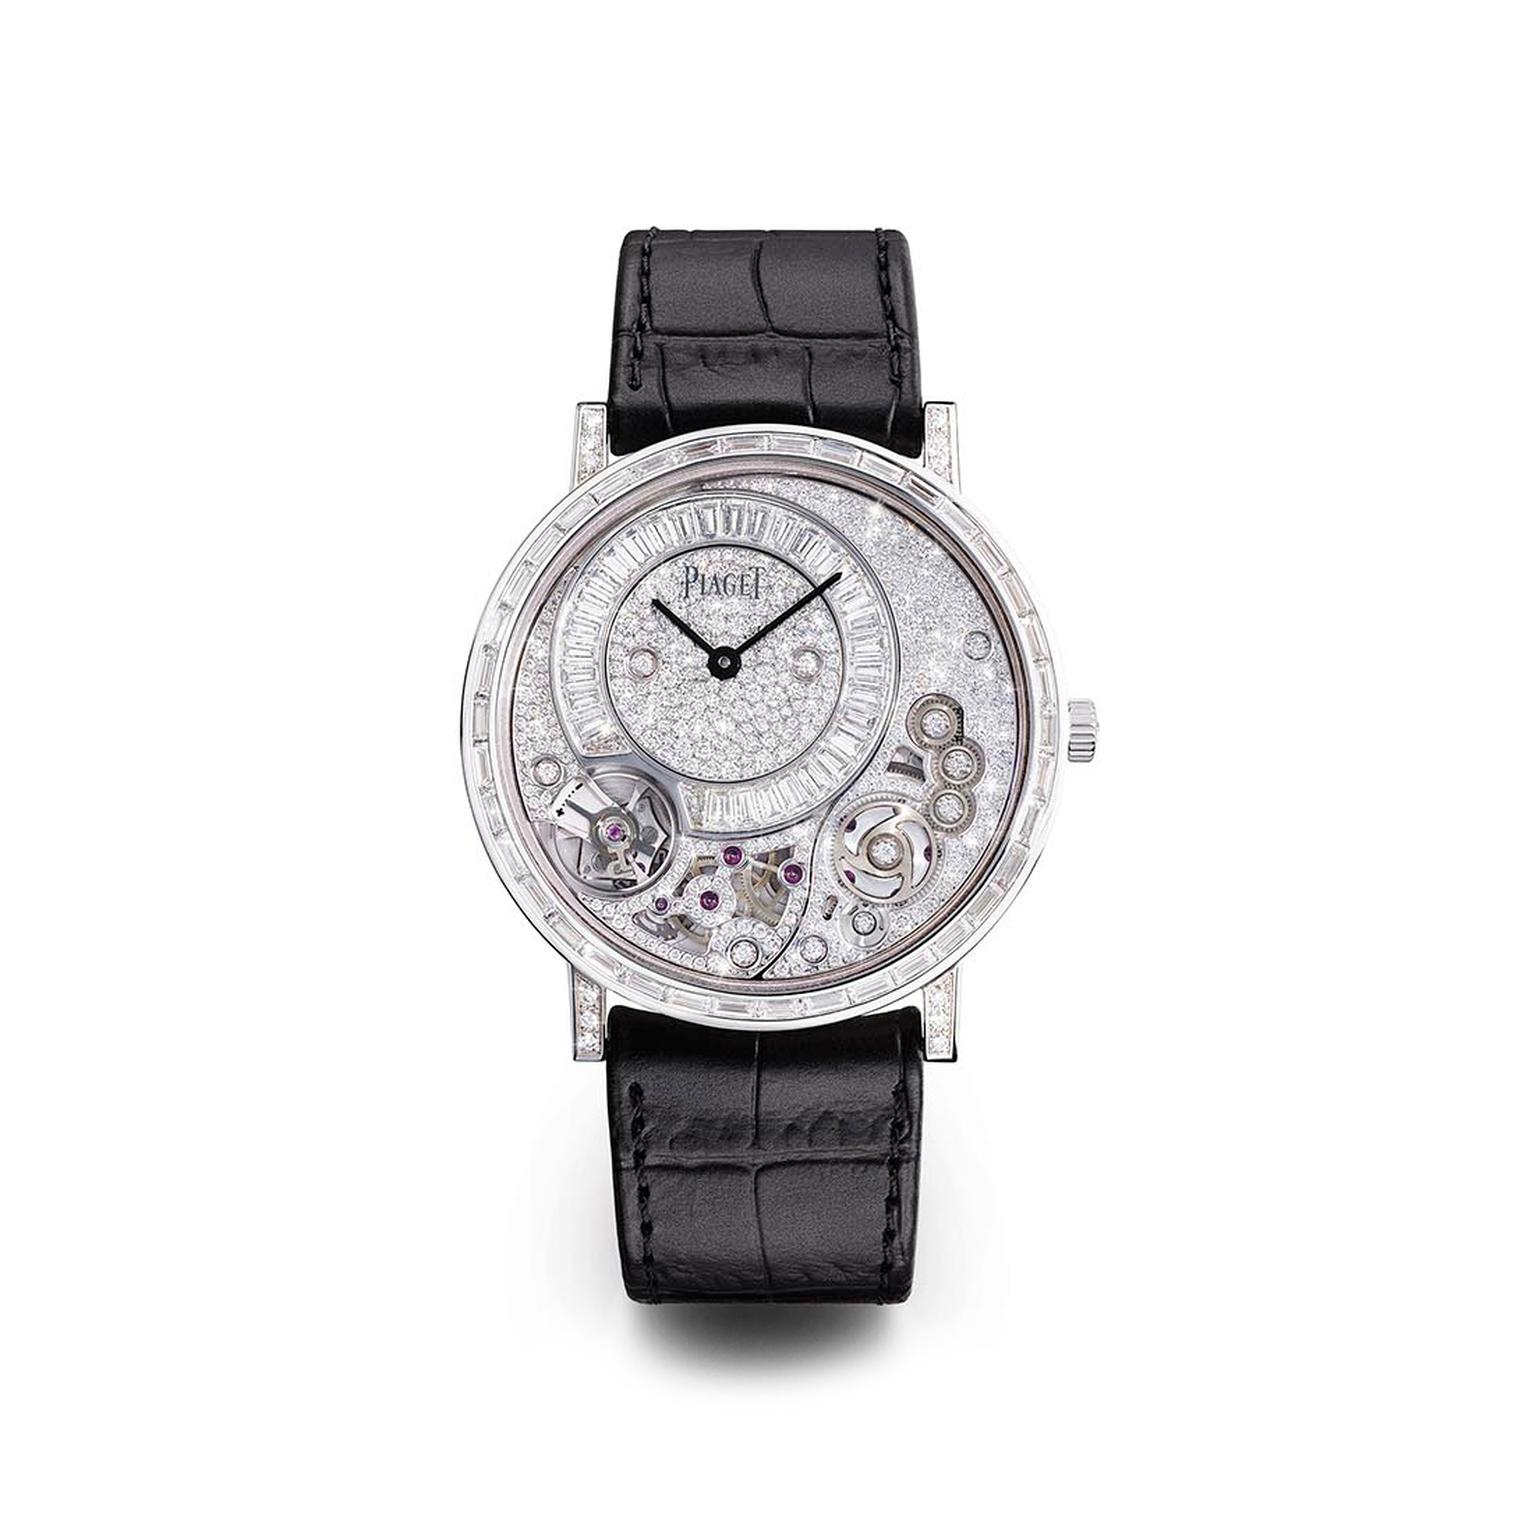 Piaget Altiplano 38mm 900D